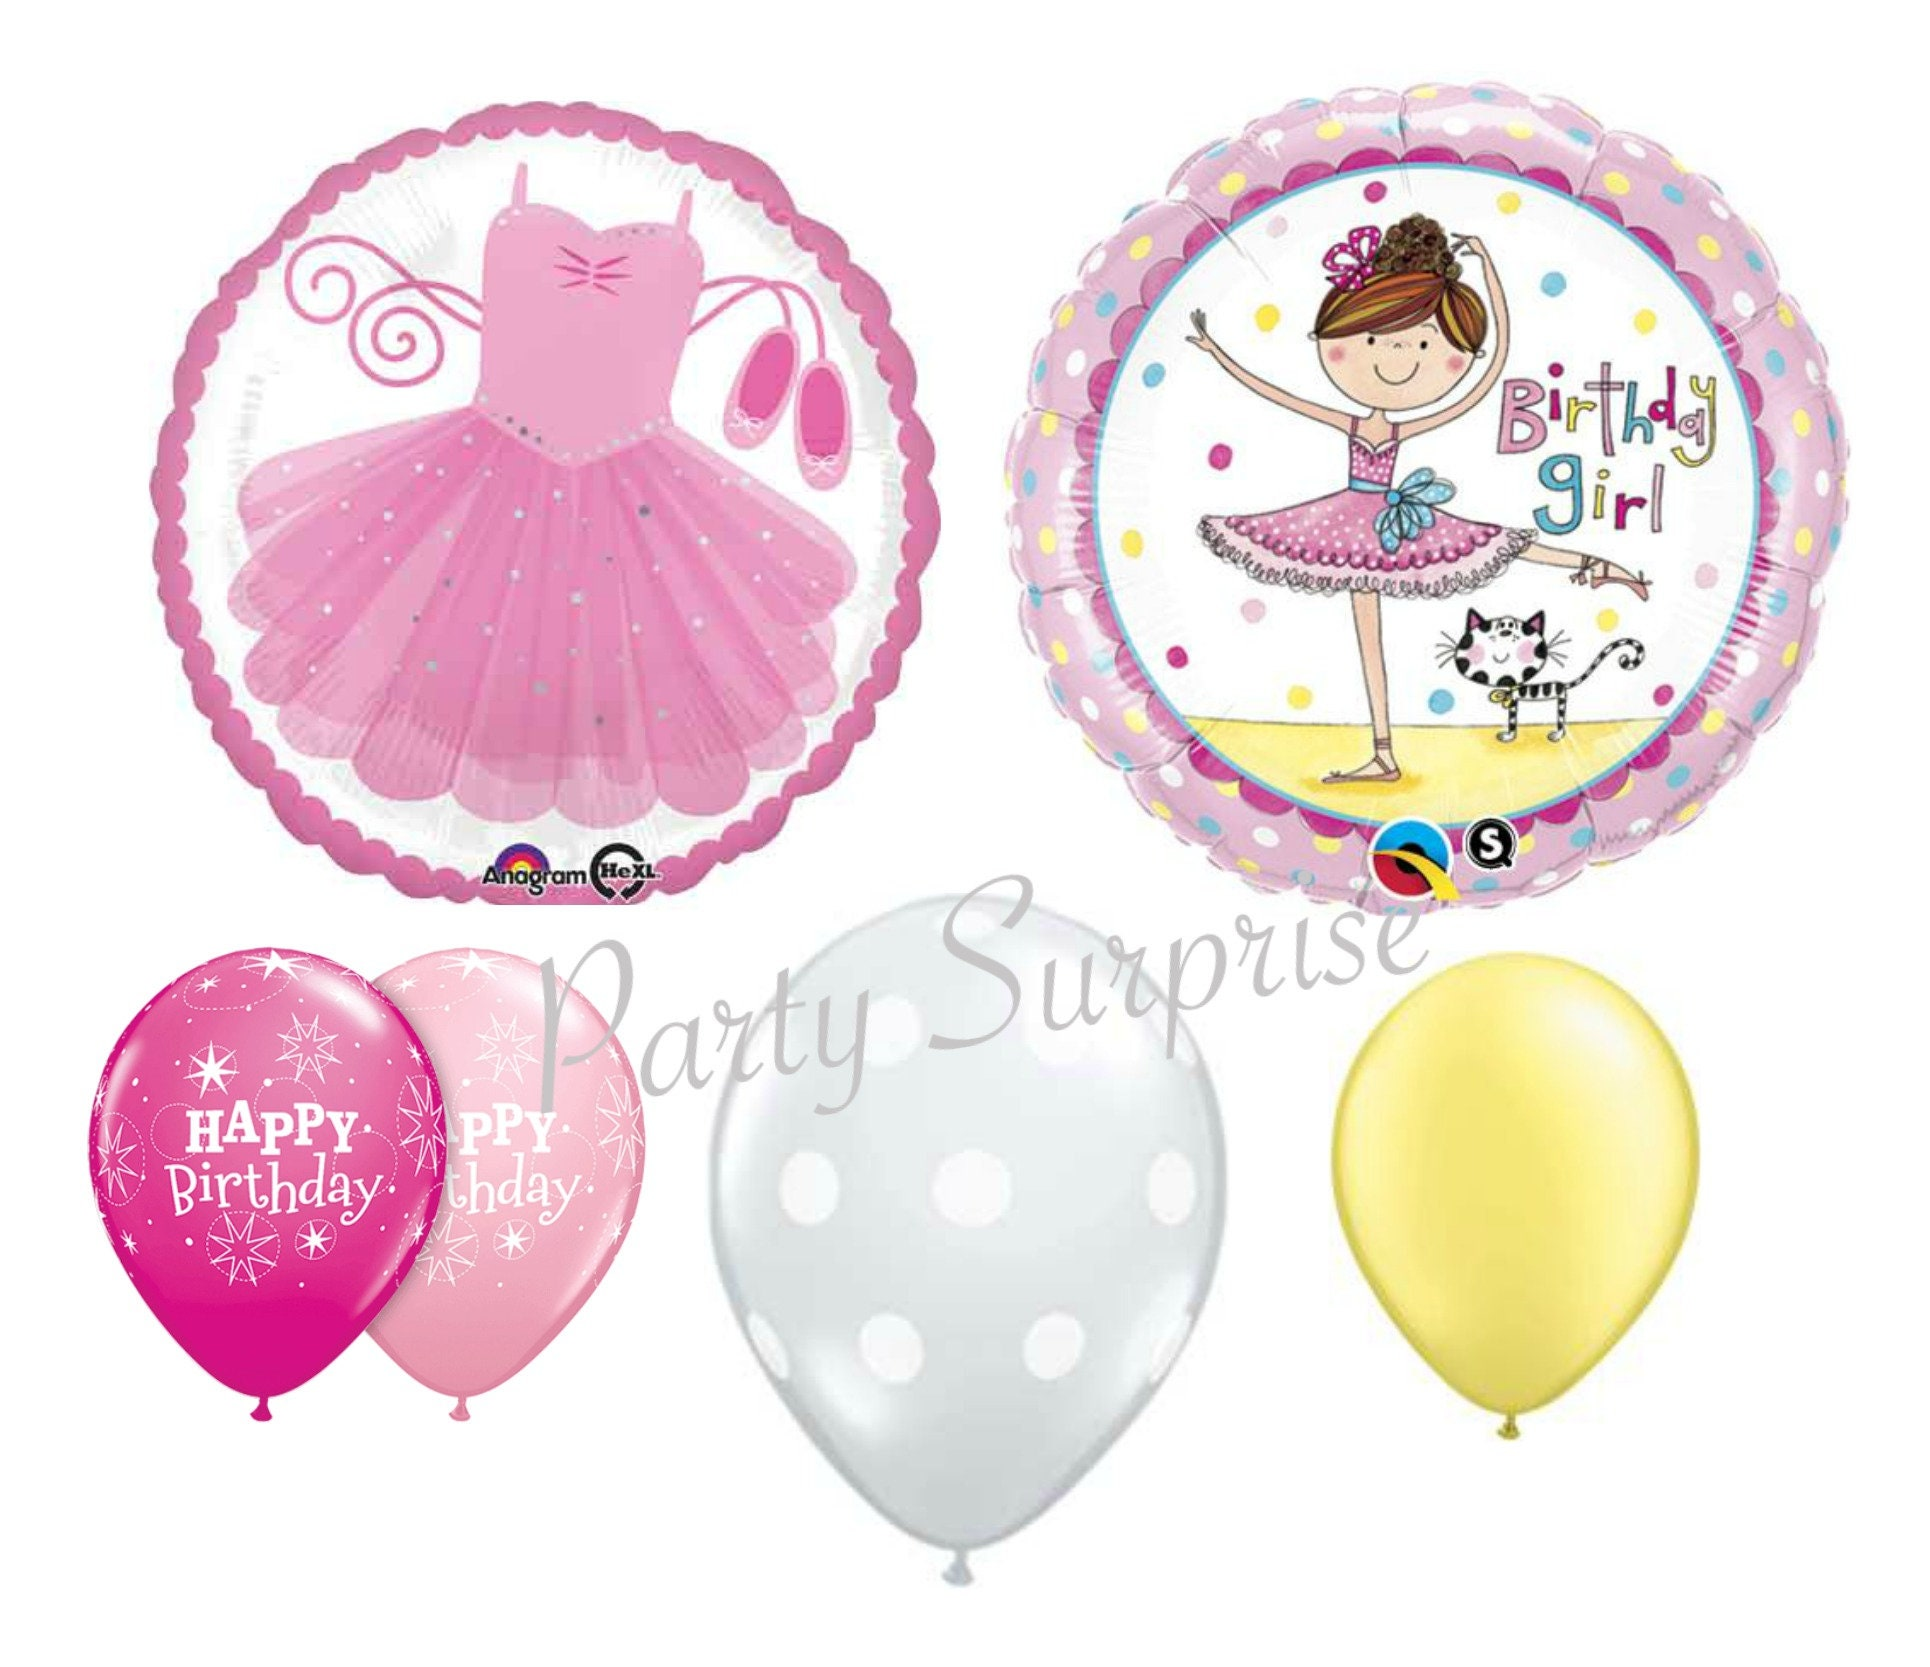 Ballerina Birthday Balloon Package Girl Birthday Balloons | Etsy